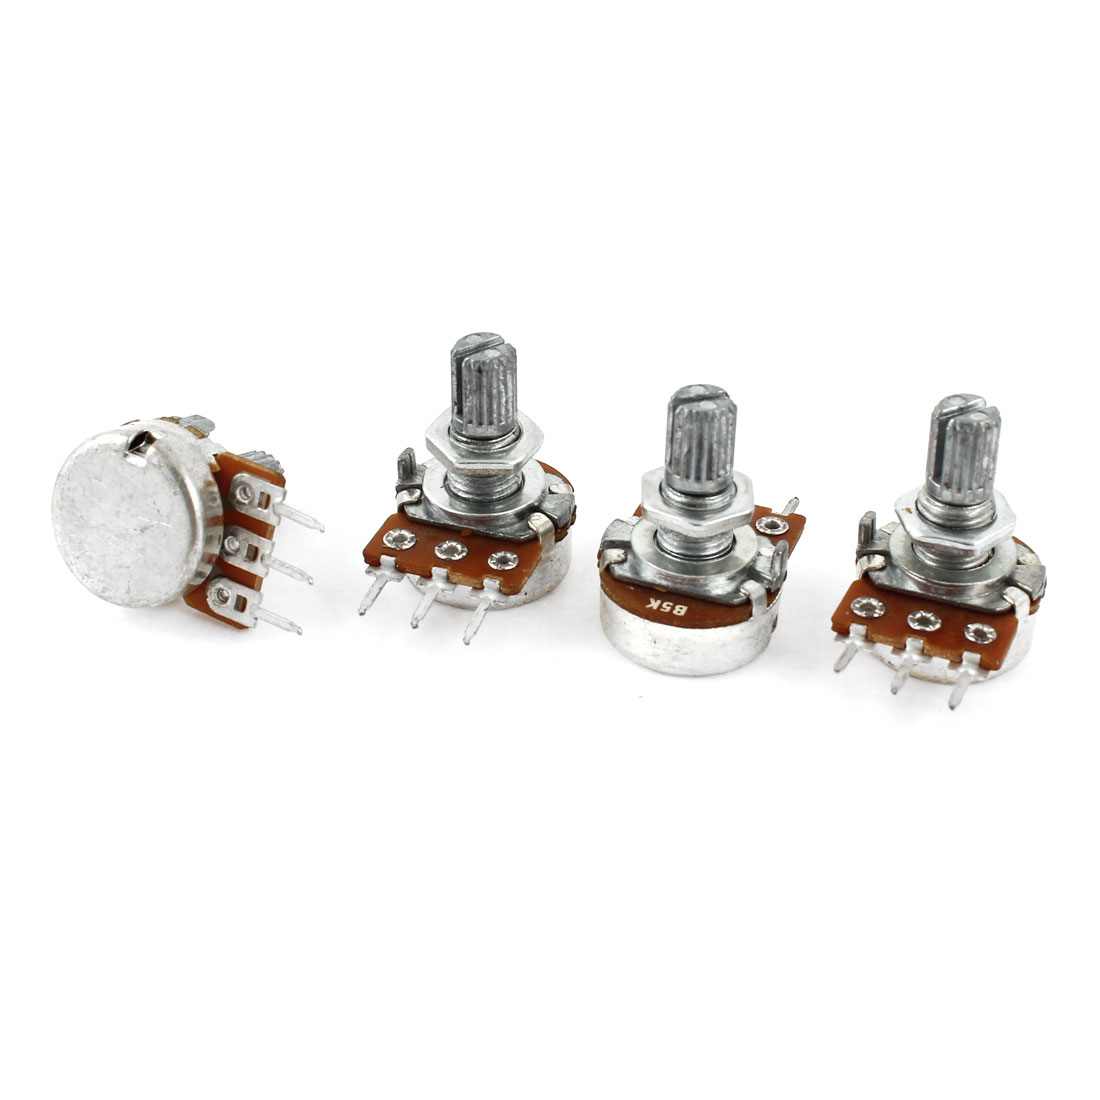 4 Pcs Type B Single Linear 15mm Shaft Rotary Taper Potentiometers B5K 5K Ohm